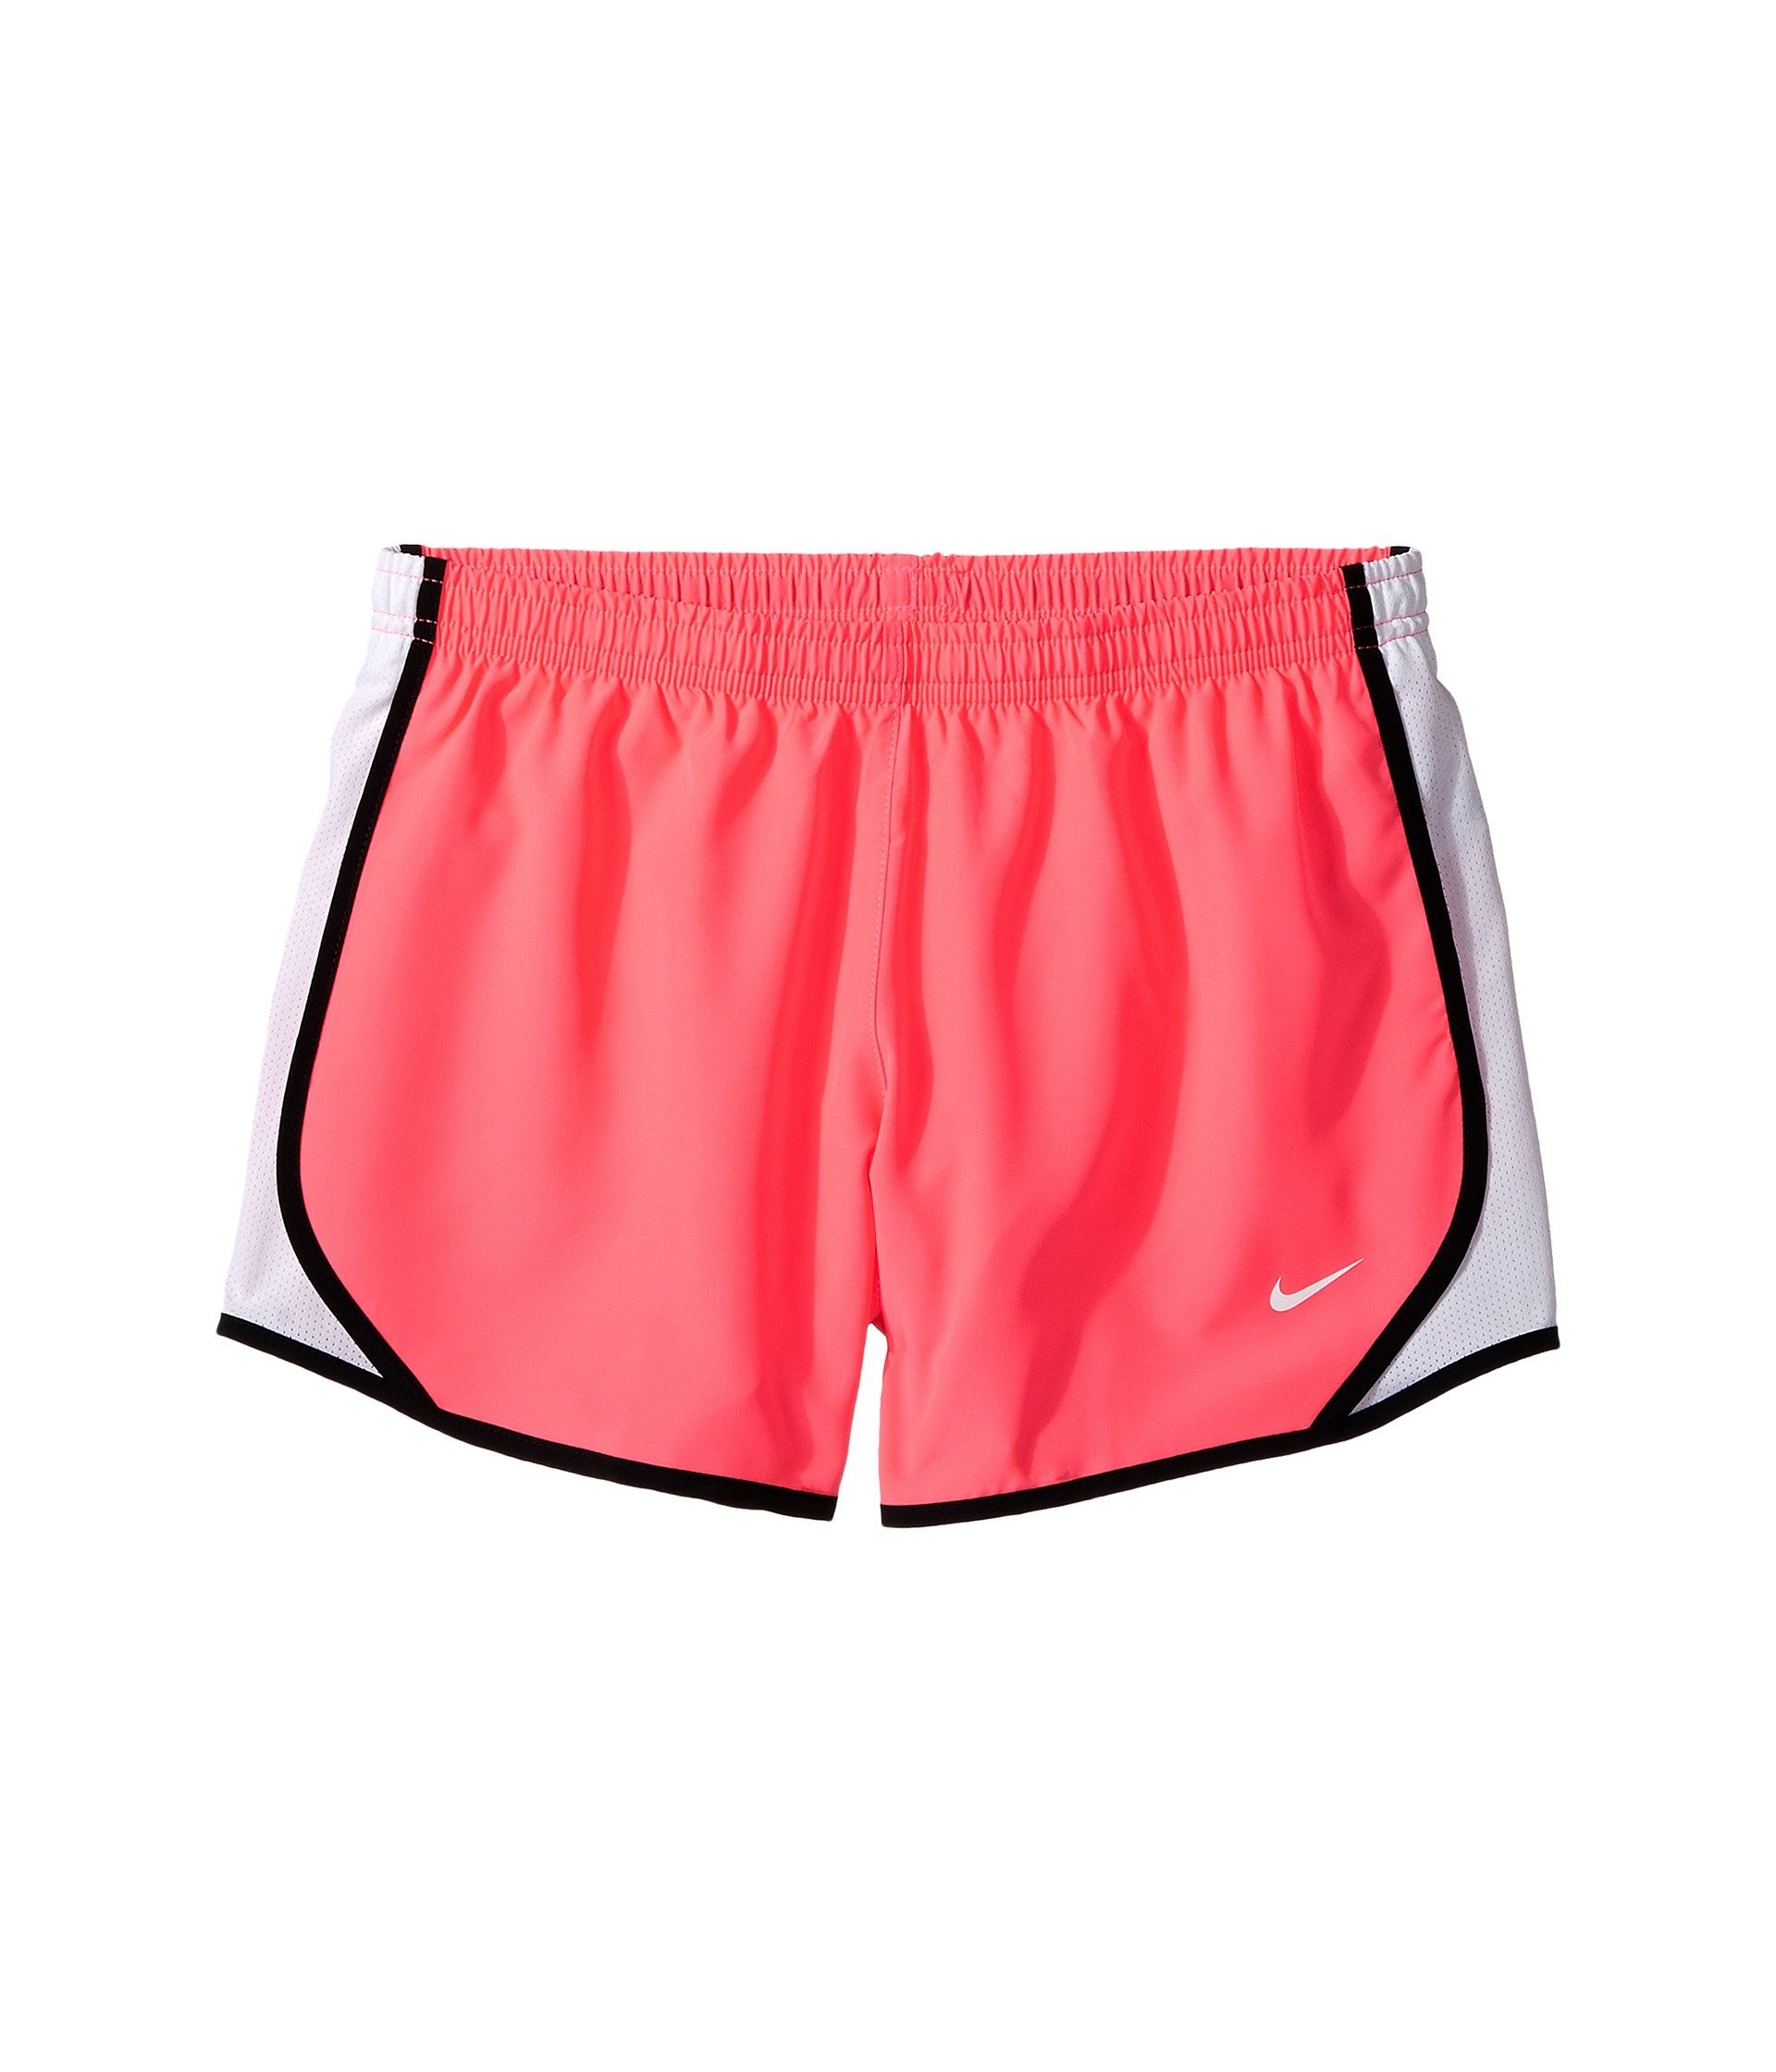 NIKE Girl's Dry Tempo Running Short Racer Pink/White/Black Size Medium